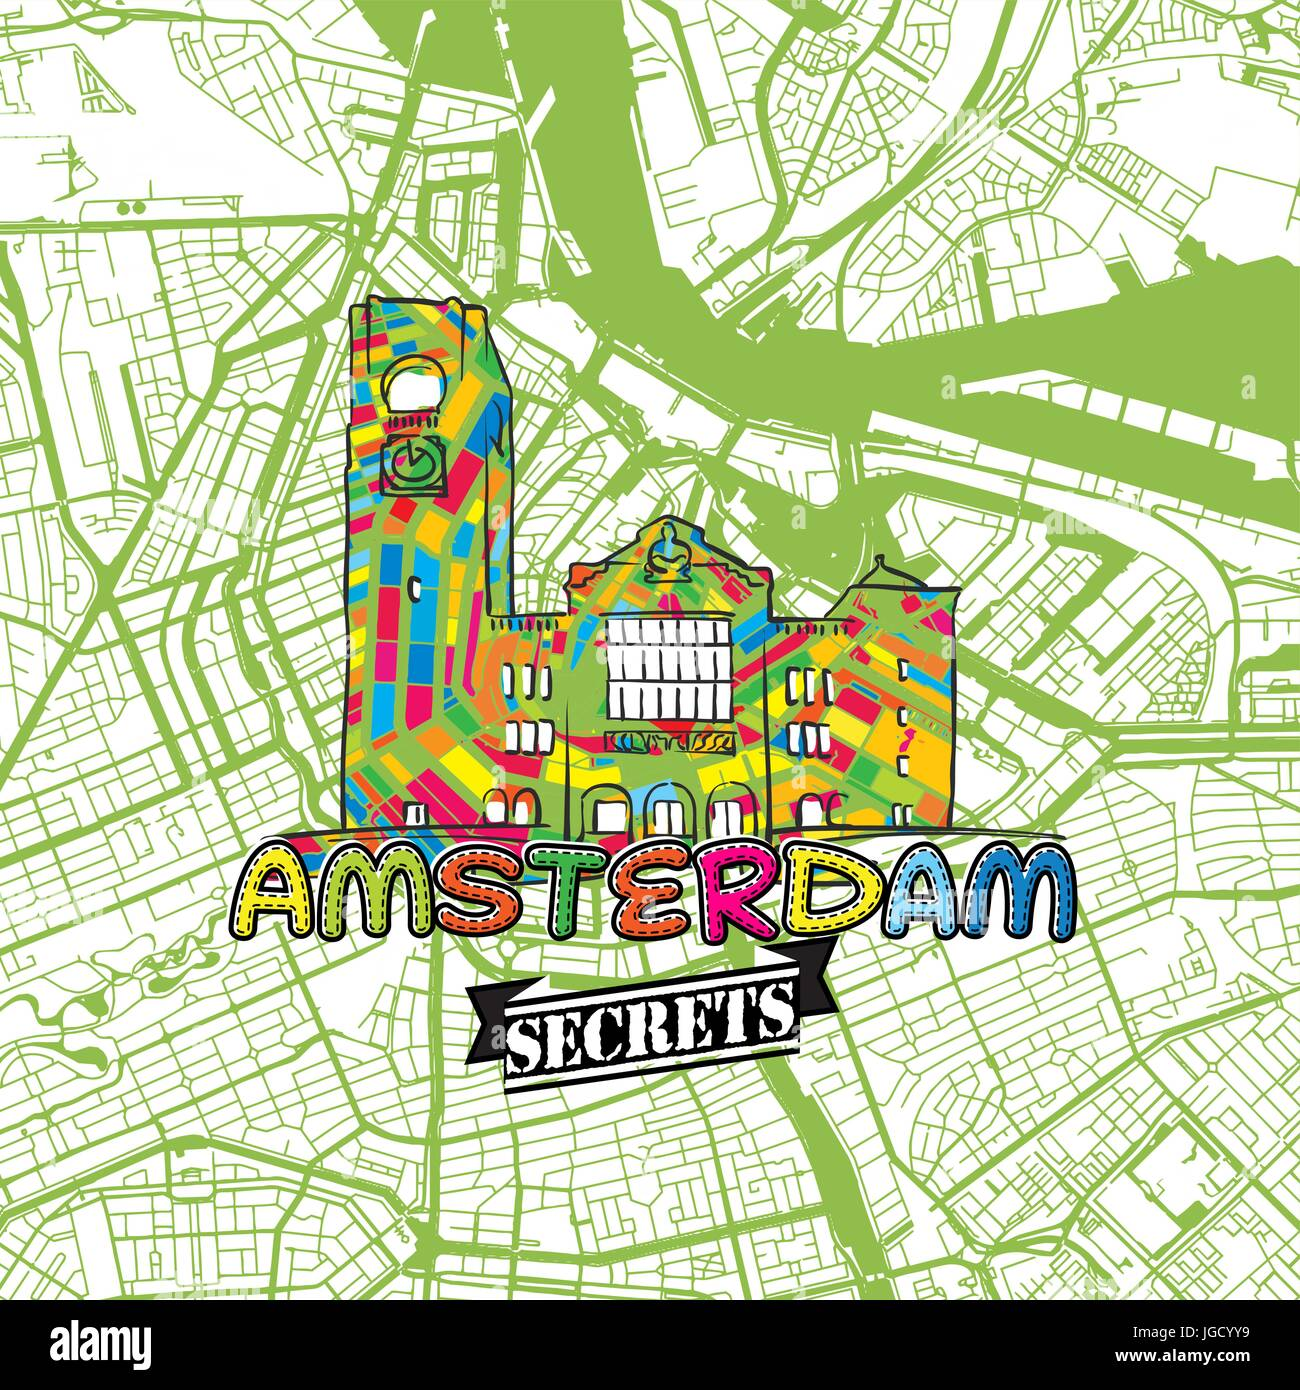 Amsterdam Travel Secrets Art Map for mapping experts and travel guides. Handmade city logo, typo badge and hand - Stock Image